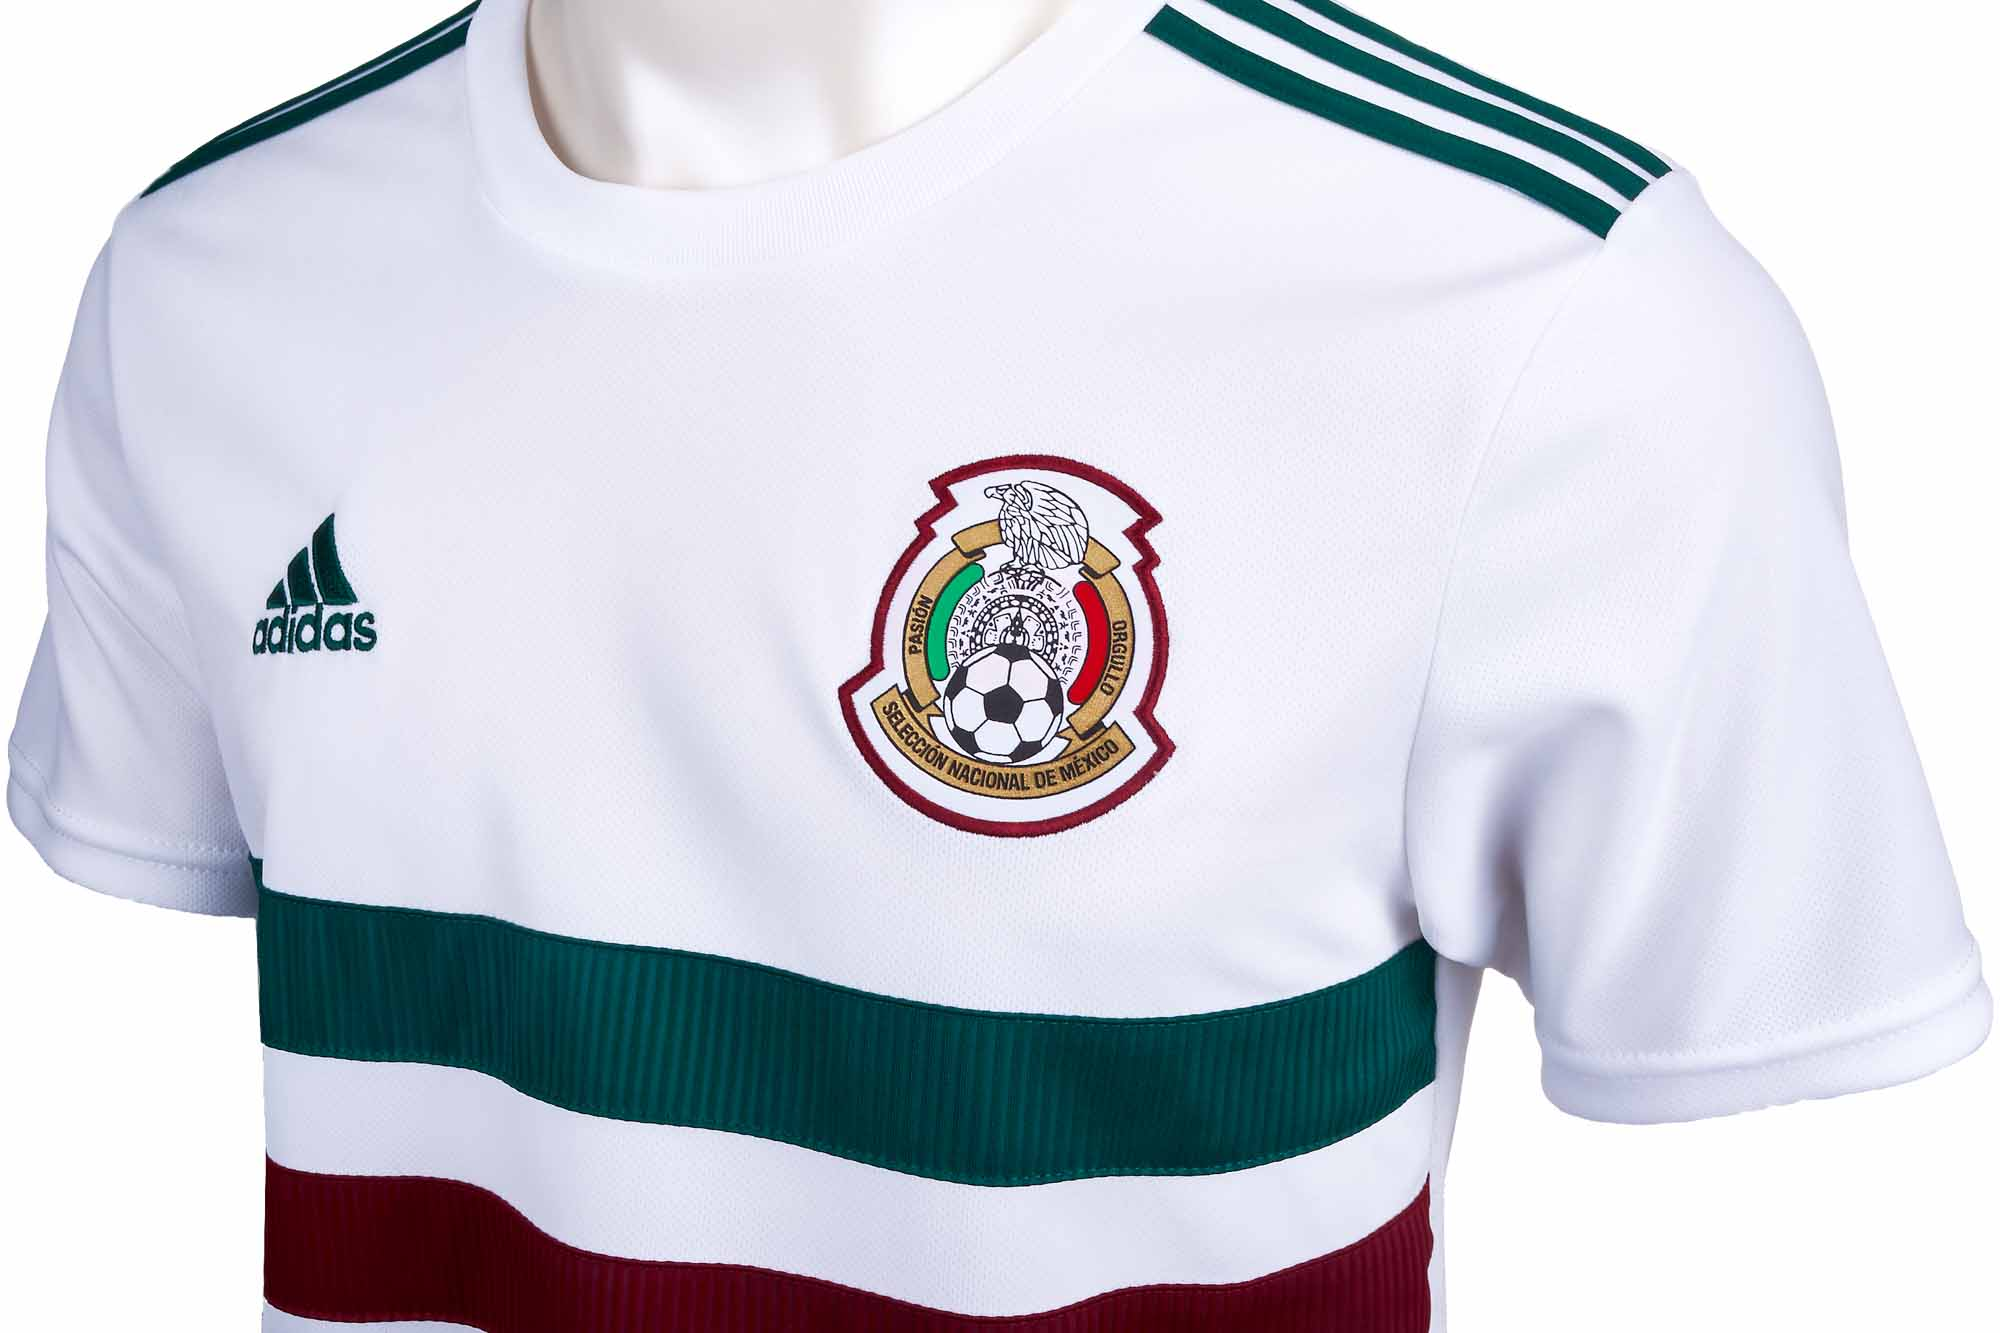 54317c5b52f Mexico Away Jersey - Youth 2018-19 - SOccerPro.com